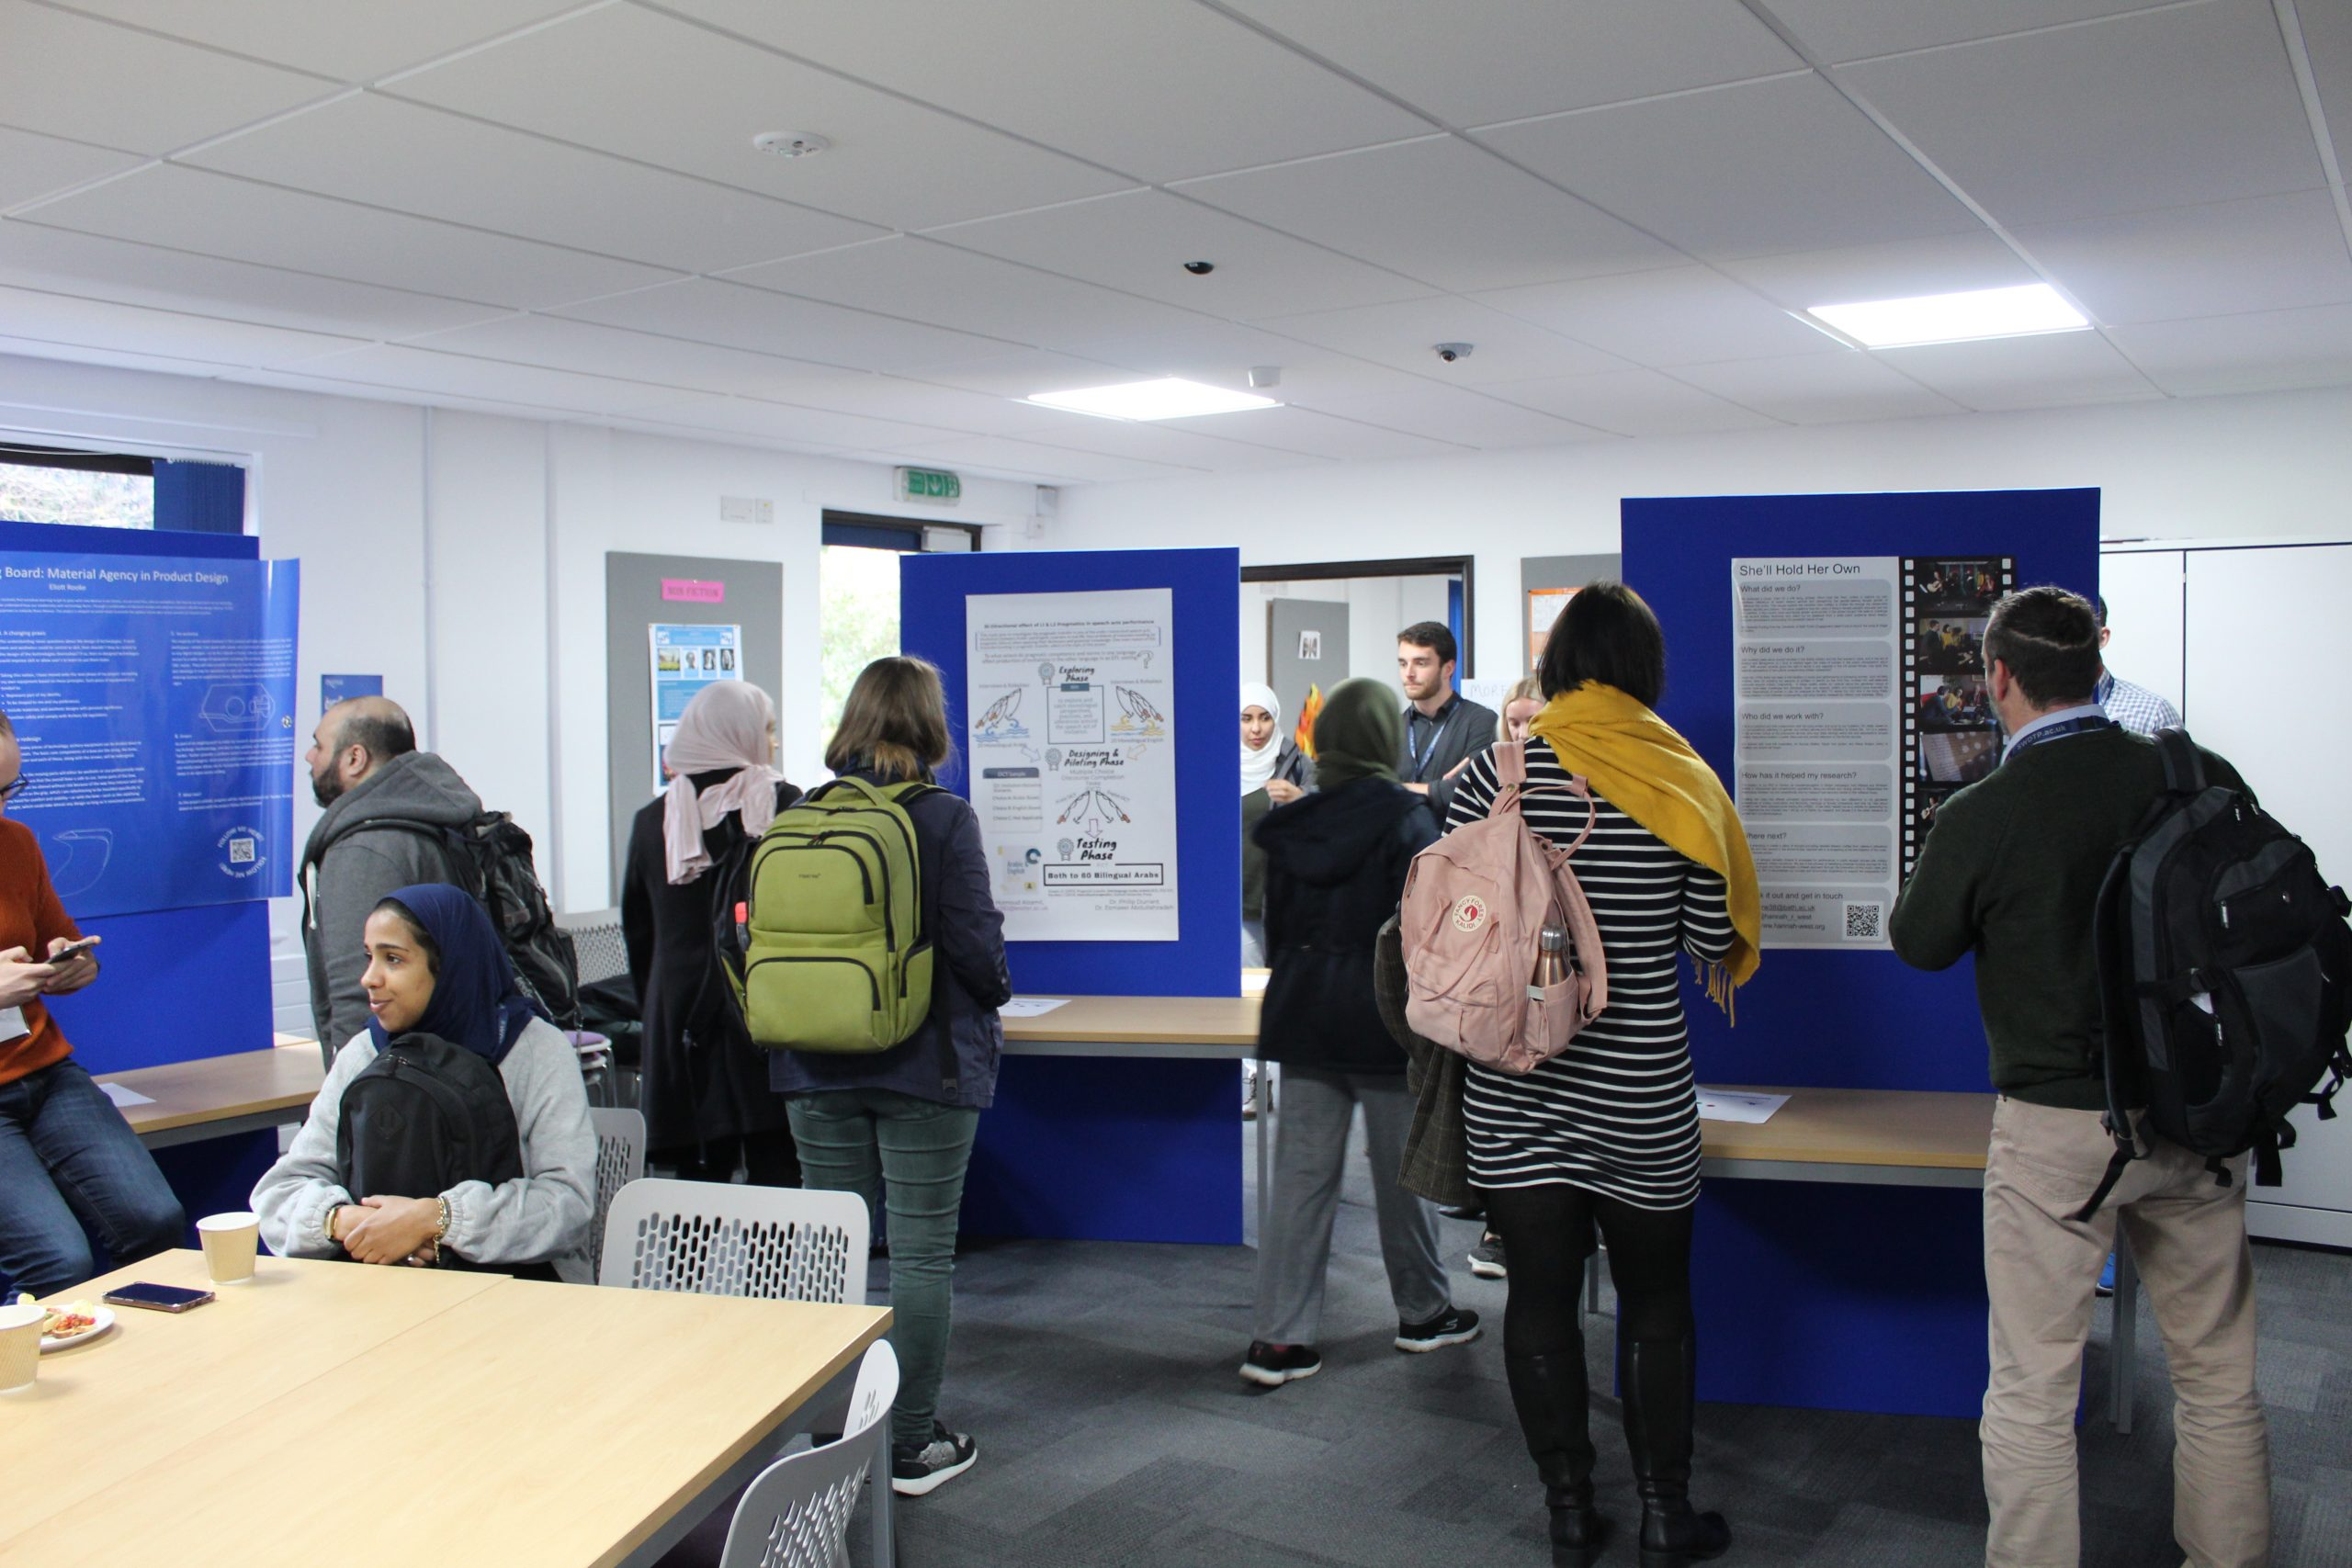 Posters SWDTP Student Conference 2019, St Lukes Campus